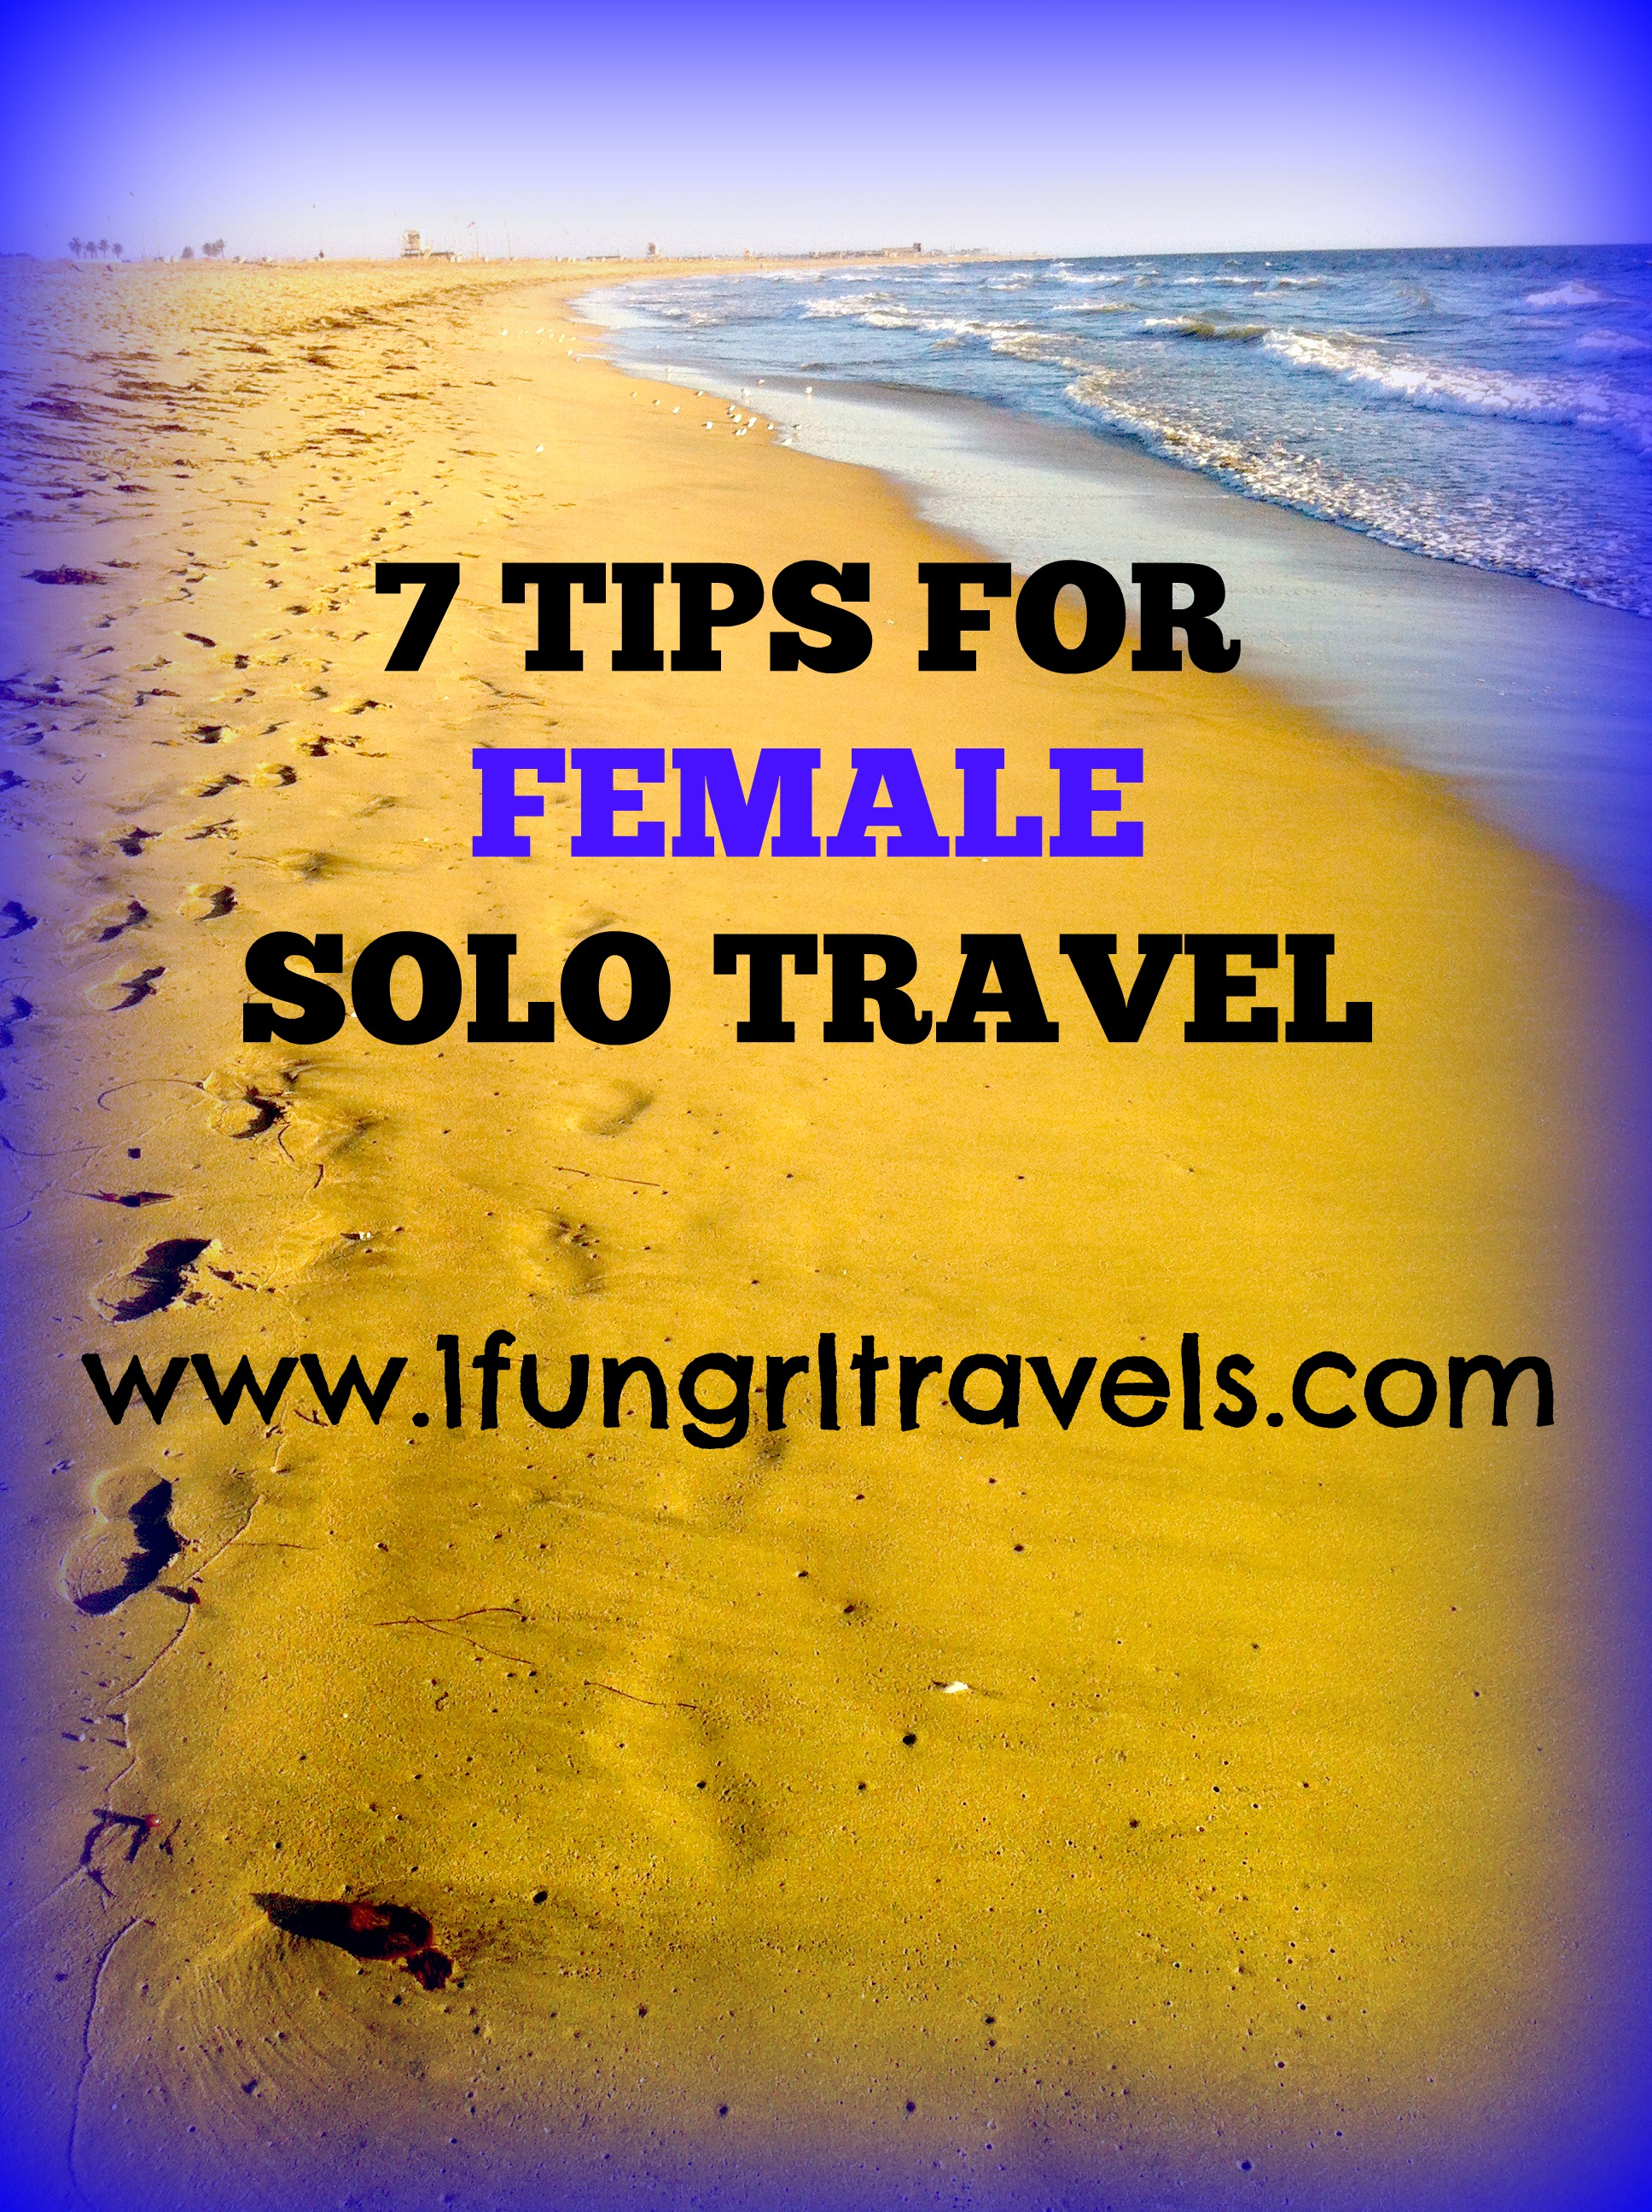 7 Tips For Female Solo Travel